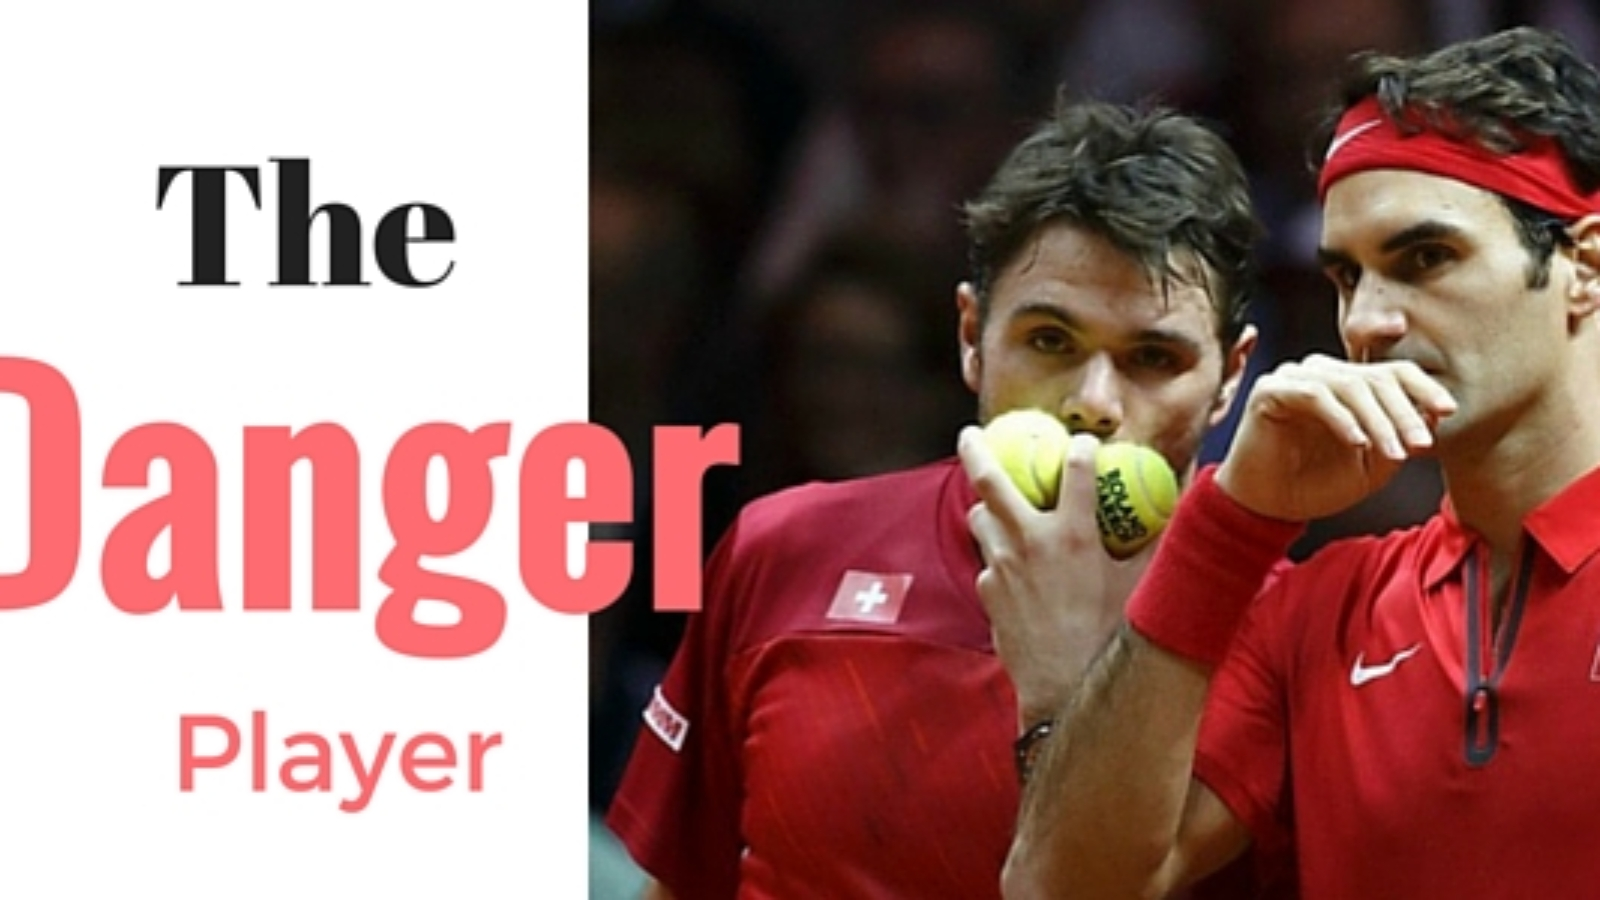 the danger player header